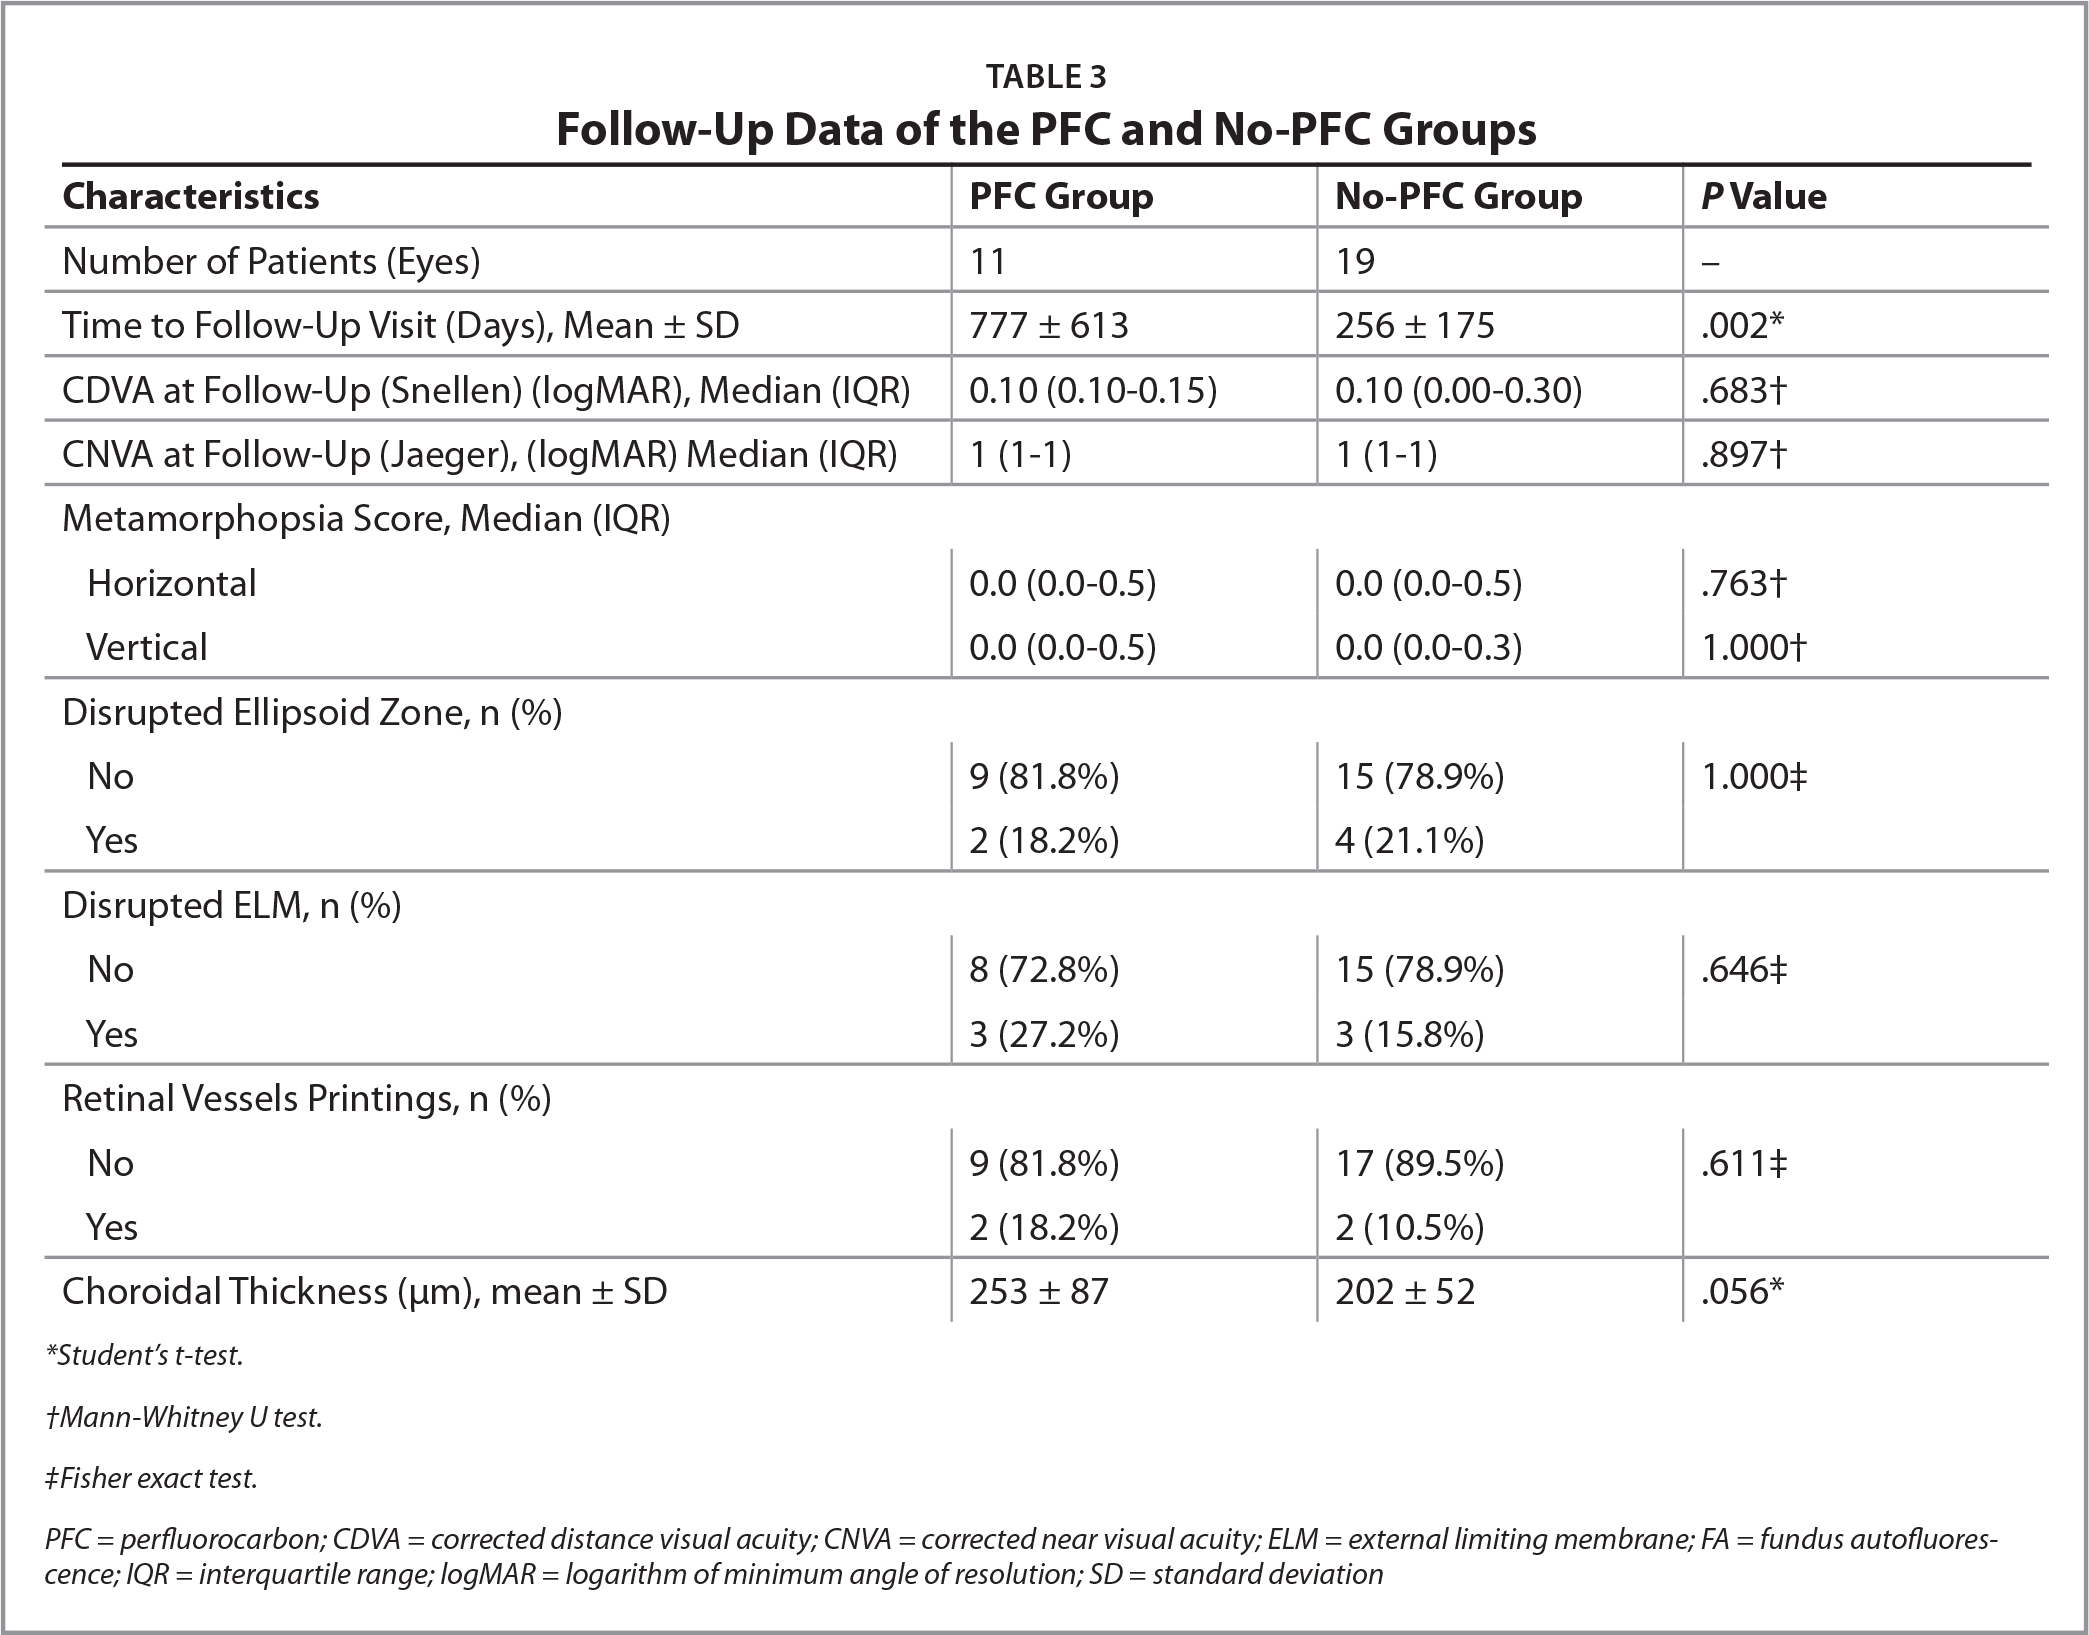 Follow-Up Data of the PFC and No-PFC Groups